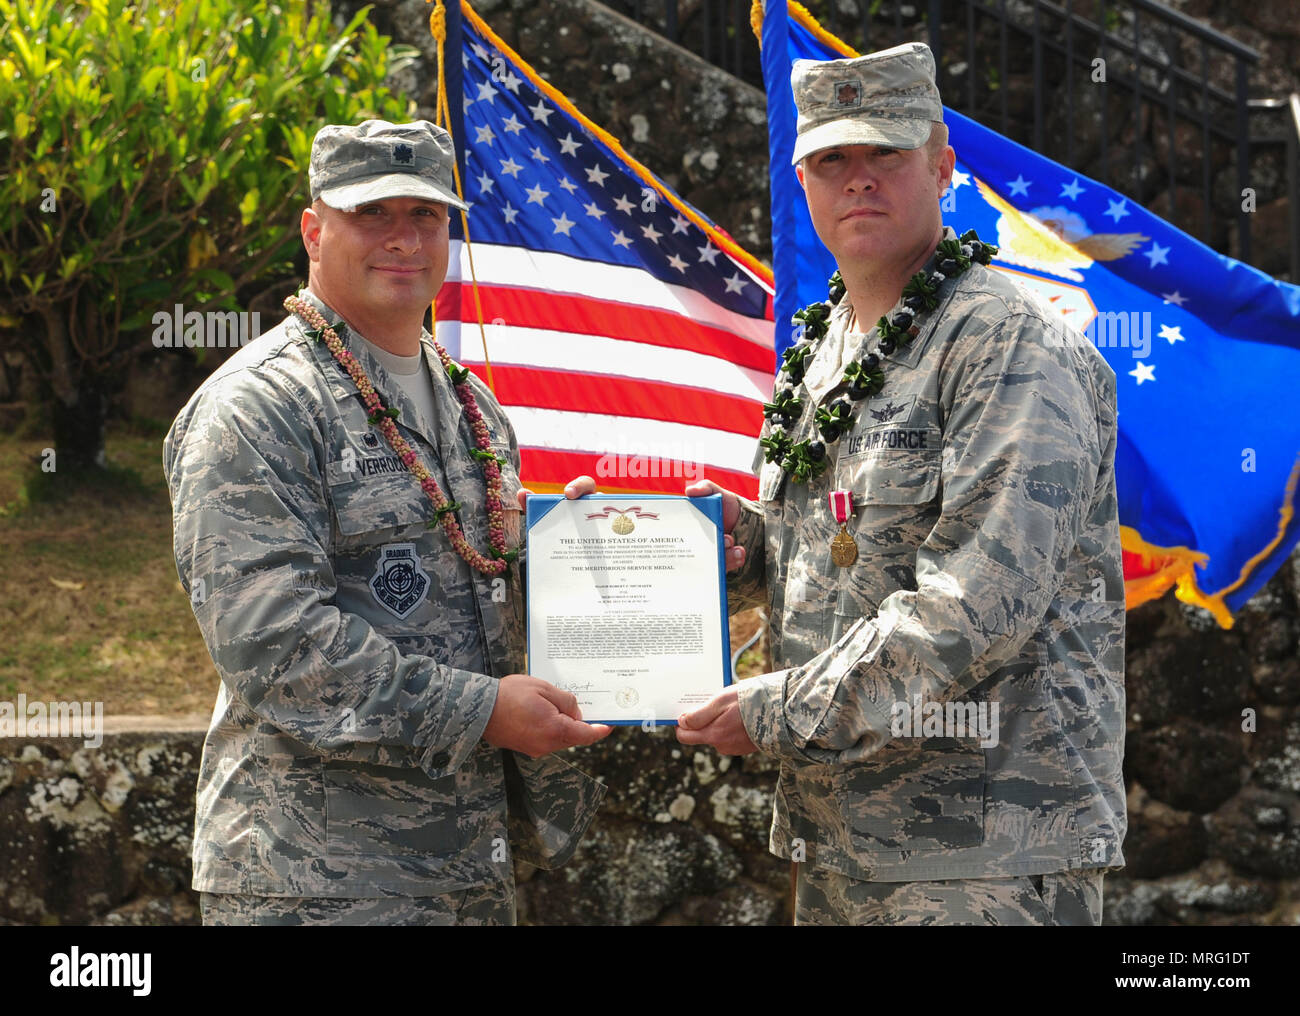 Lt. Col. Phillip Verroco, 21st Space Operations Squadron commander, presents Maj. Robert F. Shumaker, Detachment 3 outgoing commander, with the Meritorious Service Medal during the Detachment 3 Change of Command Ceremony, Kaena Point, Hawaii, June 9, 2017.  Detachment 3 is a component of the 21st Space Operations Squadron, 50th Network Operations Group, 50th Space Wing, and is located on the western tip of Oahu.  It is the oldest and one of seven worldwide remote tracking stations in the Air Force Satellite Control Network.  (U.S. Air Force photo by Tech. Sgt. Heather Redman) - Stock Image